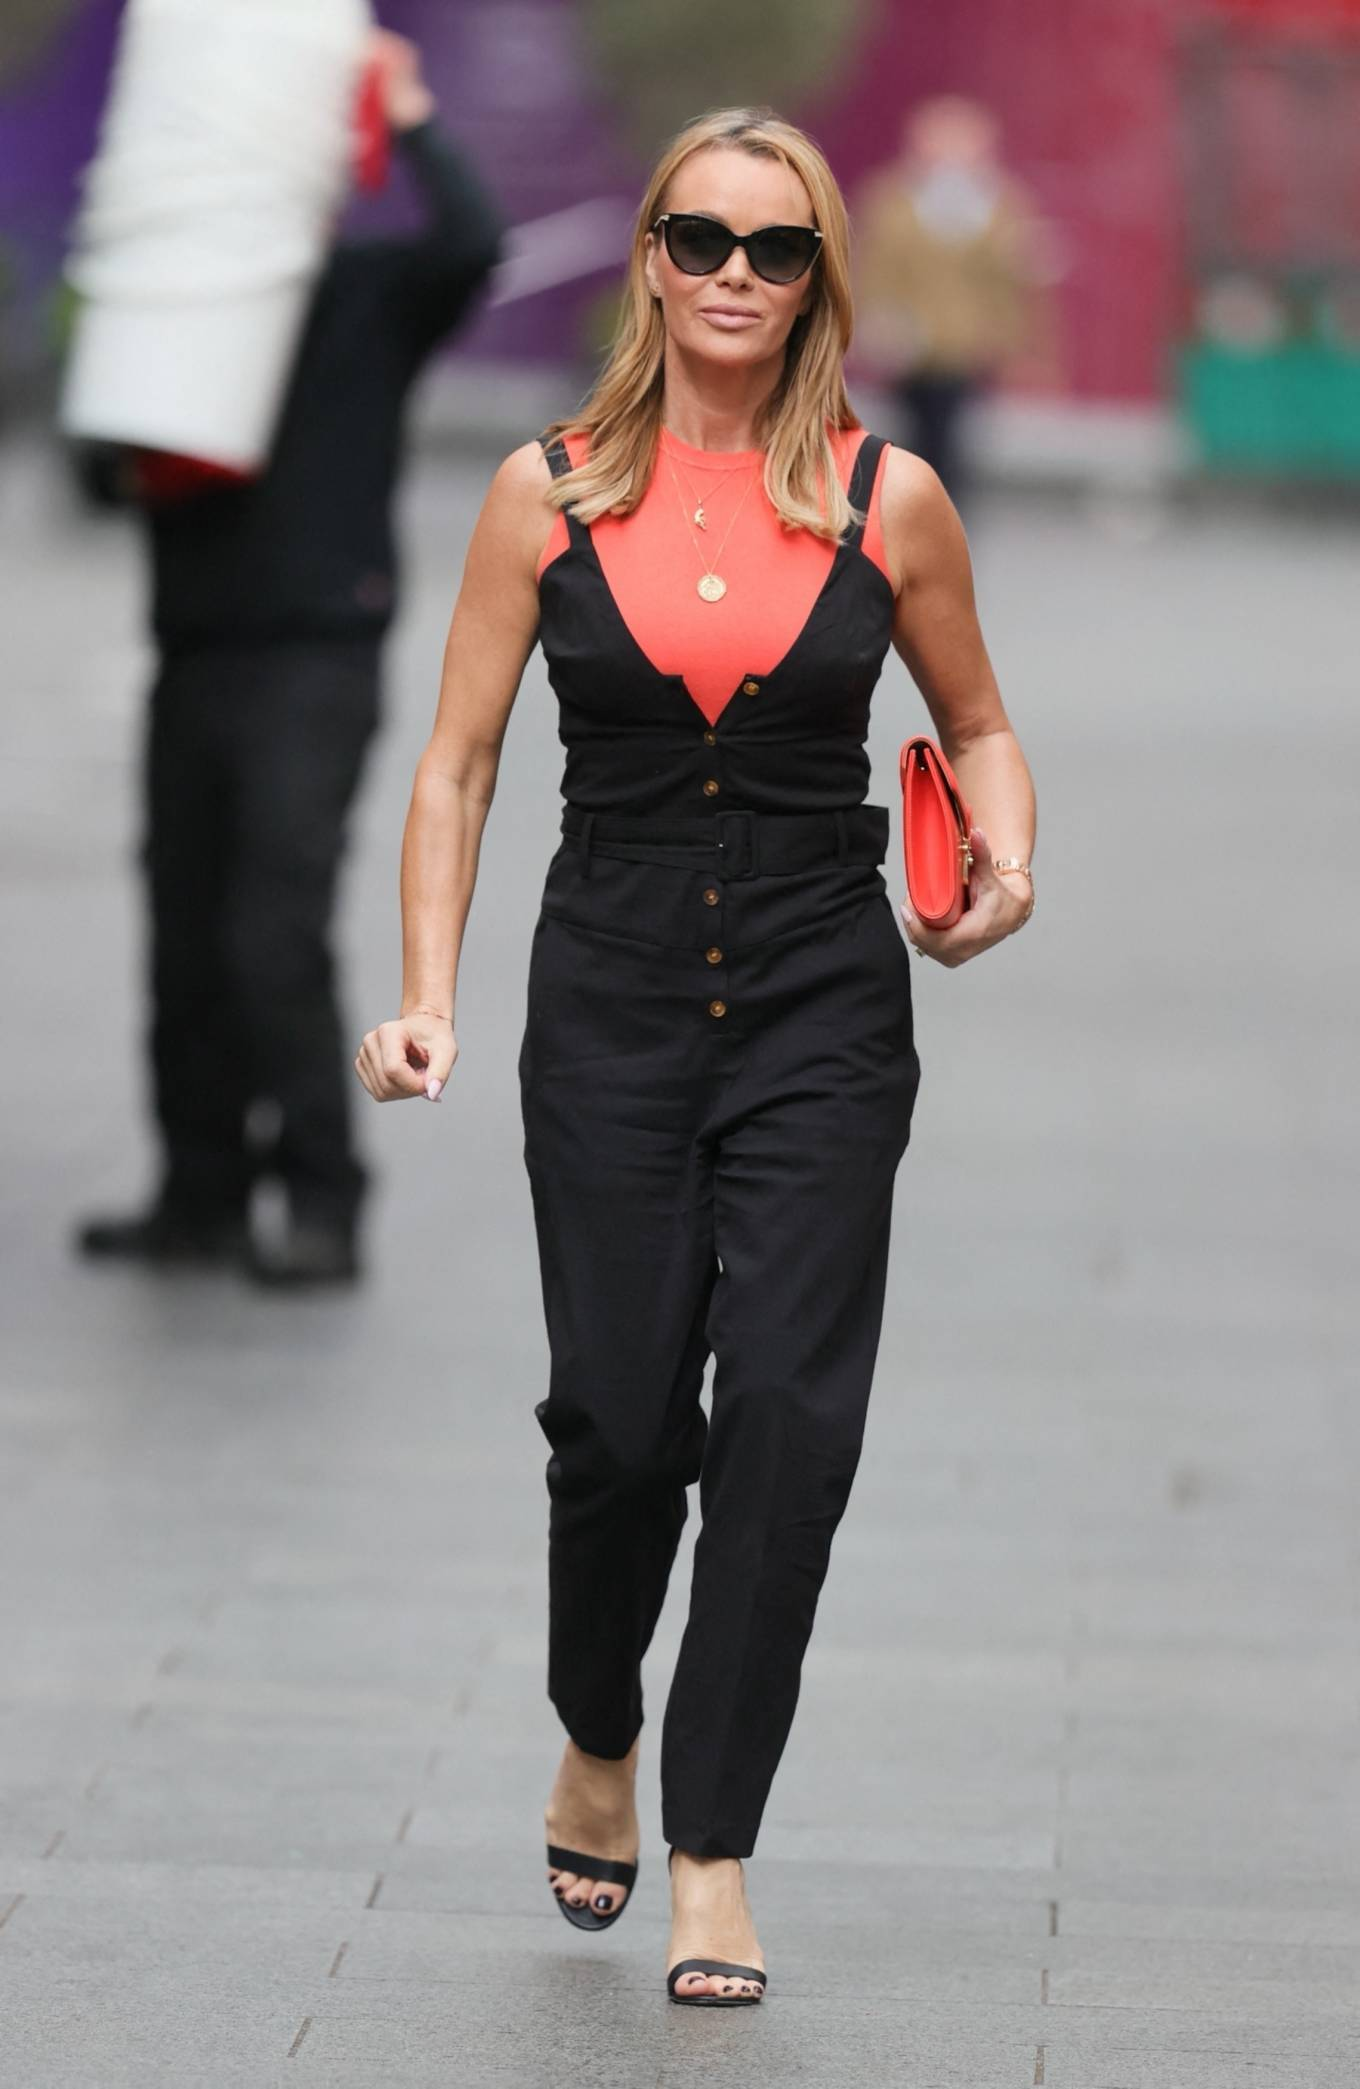 Amanda Holden - leaving the Global studios after the Heart Breakfast show in London